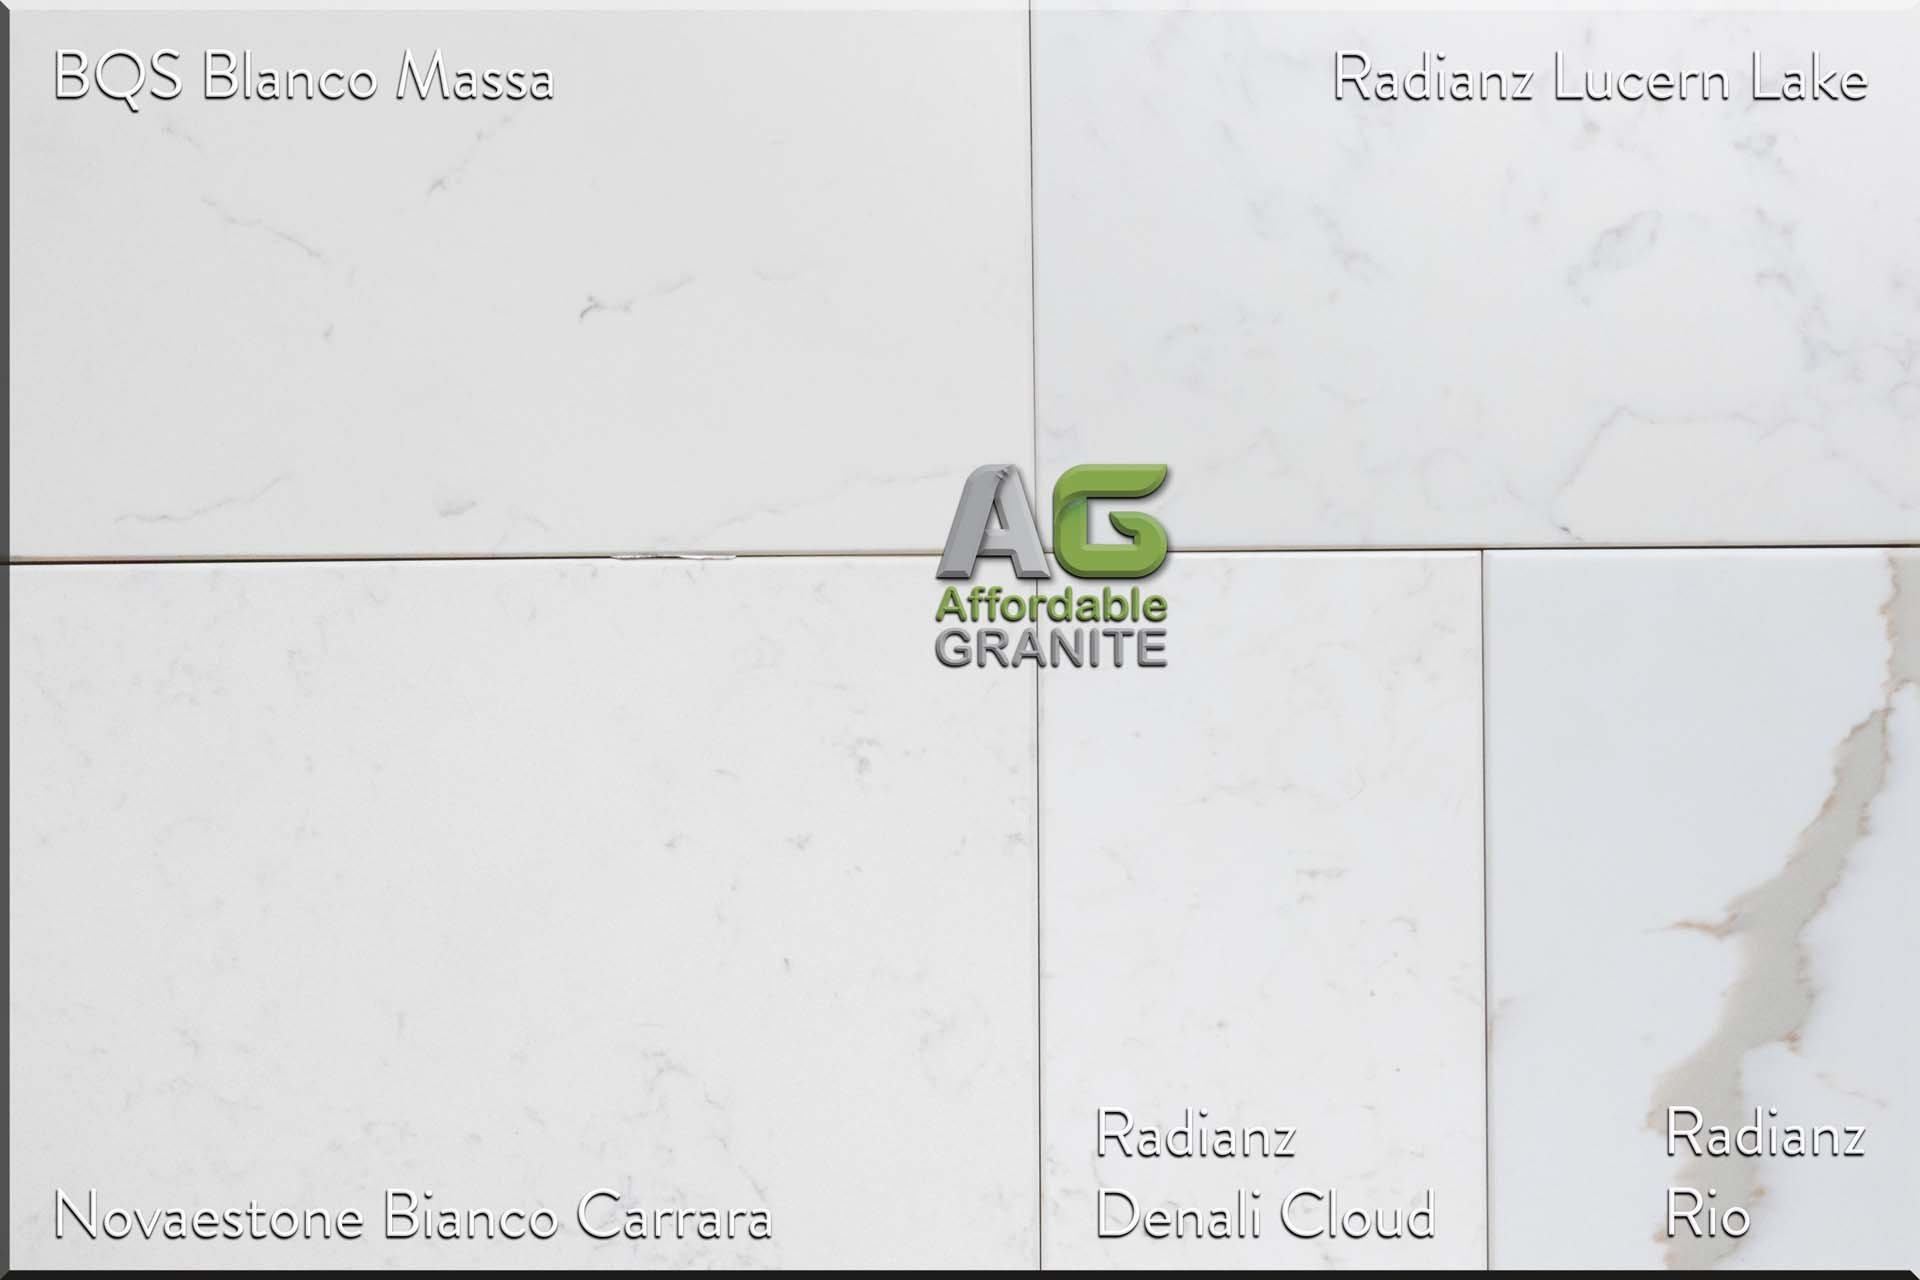 BQS Blanco Massa Novaestone Bianco Carrara Radianz Rio Denali Cloud Lucern Lake